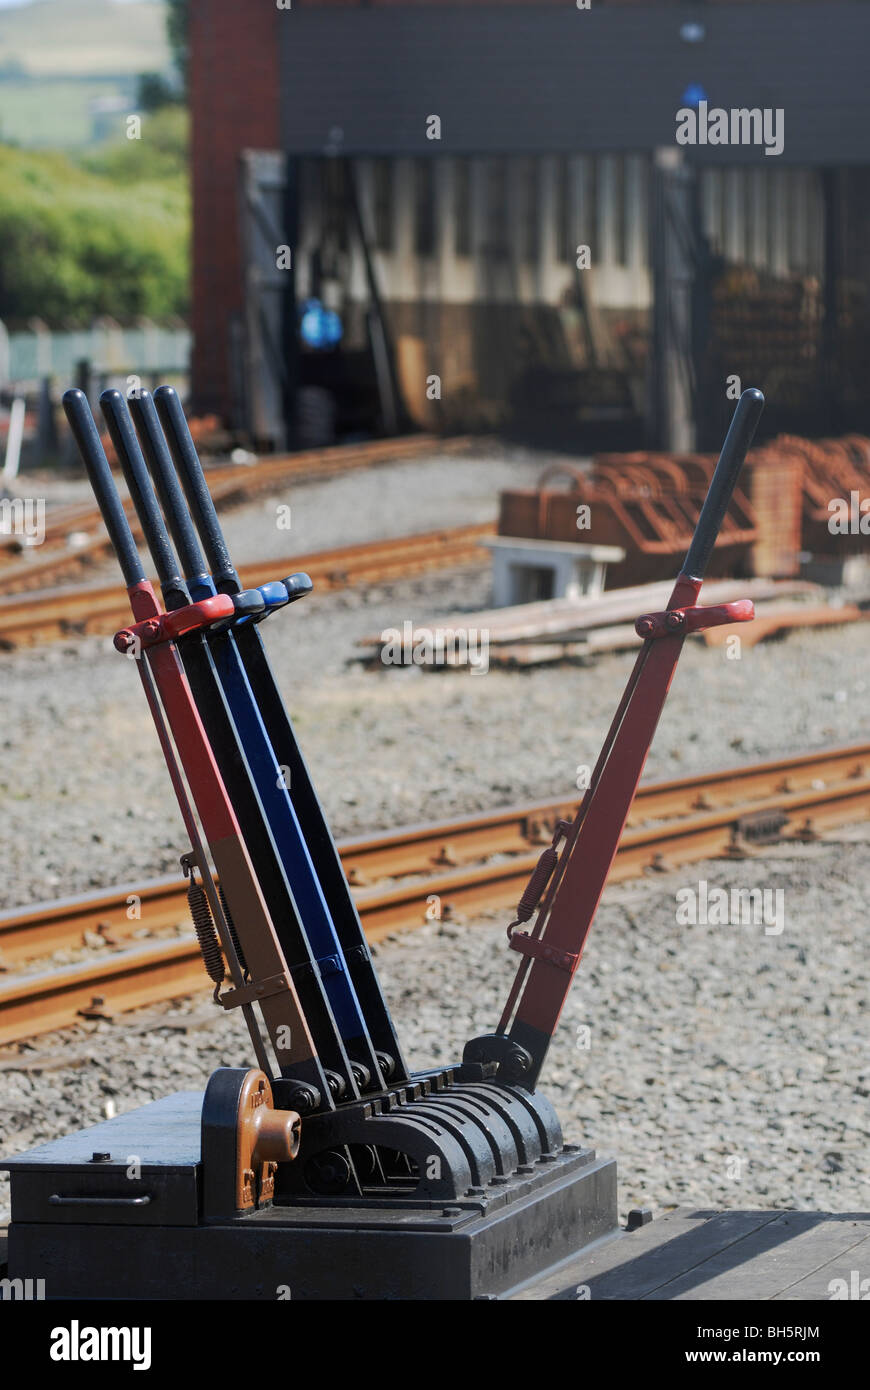 Levers for manual railway signal and points operation, Aberystwyth, Wales. - Stock Image